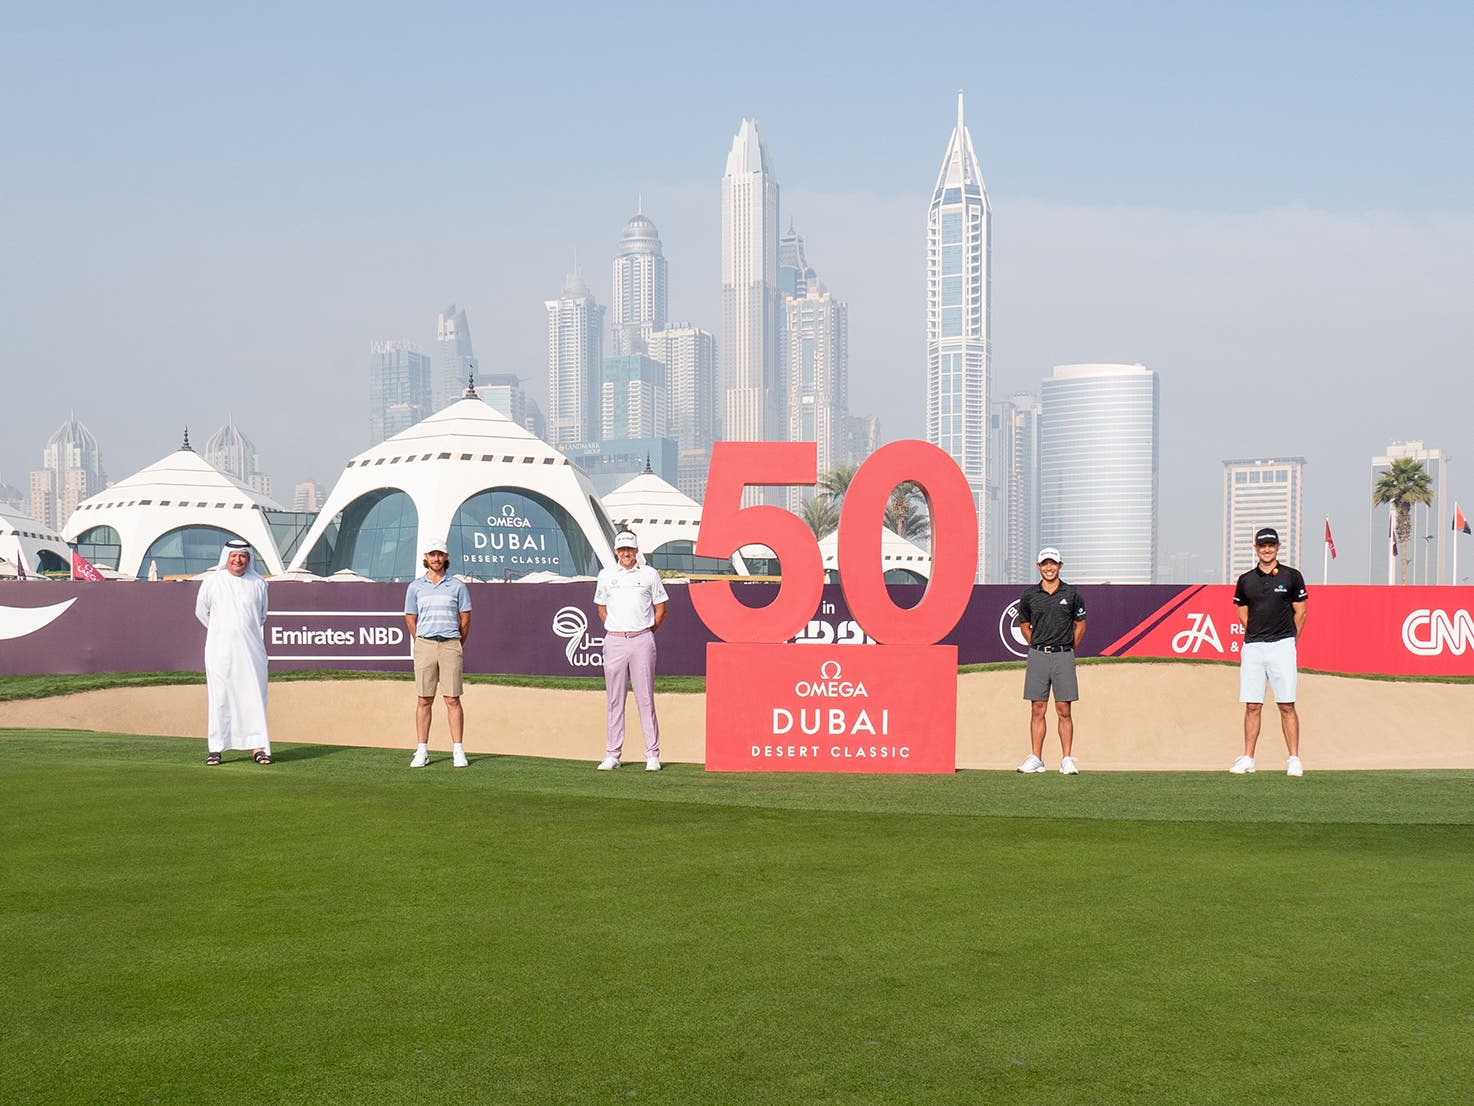 Golf Icons Celebrate UAE's 50th Anniversary at 2021 OMEGA Dubai Desert Classic